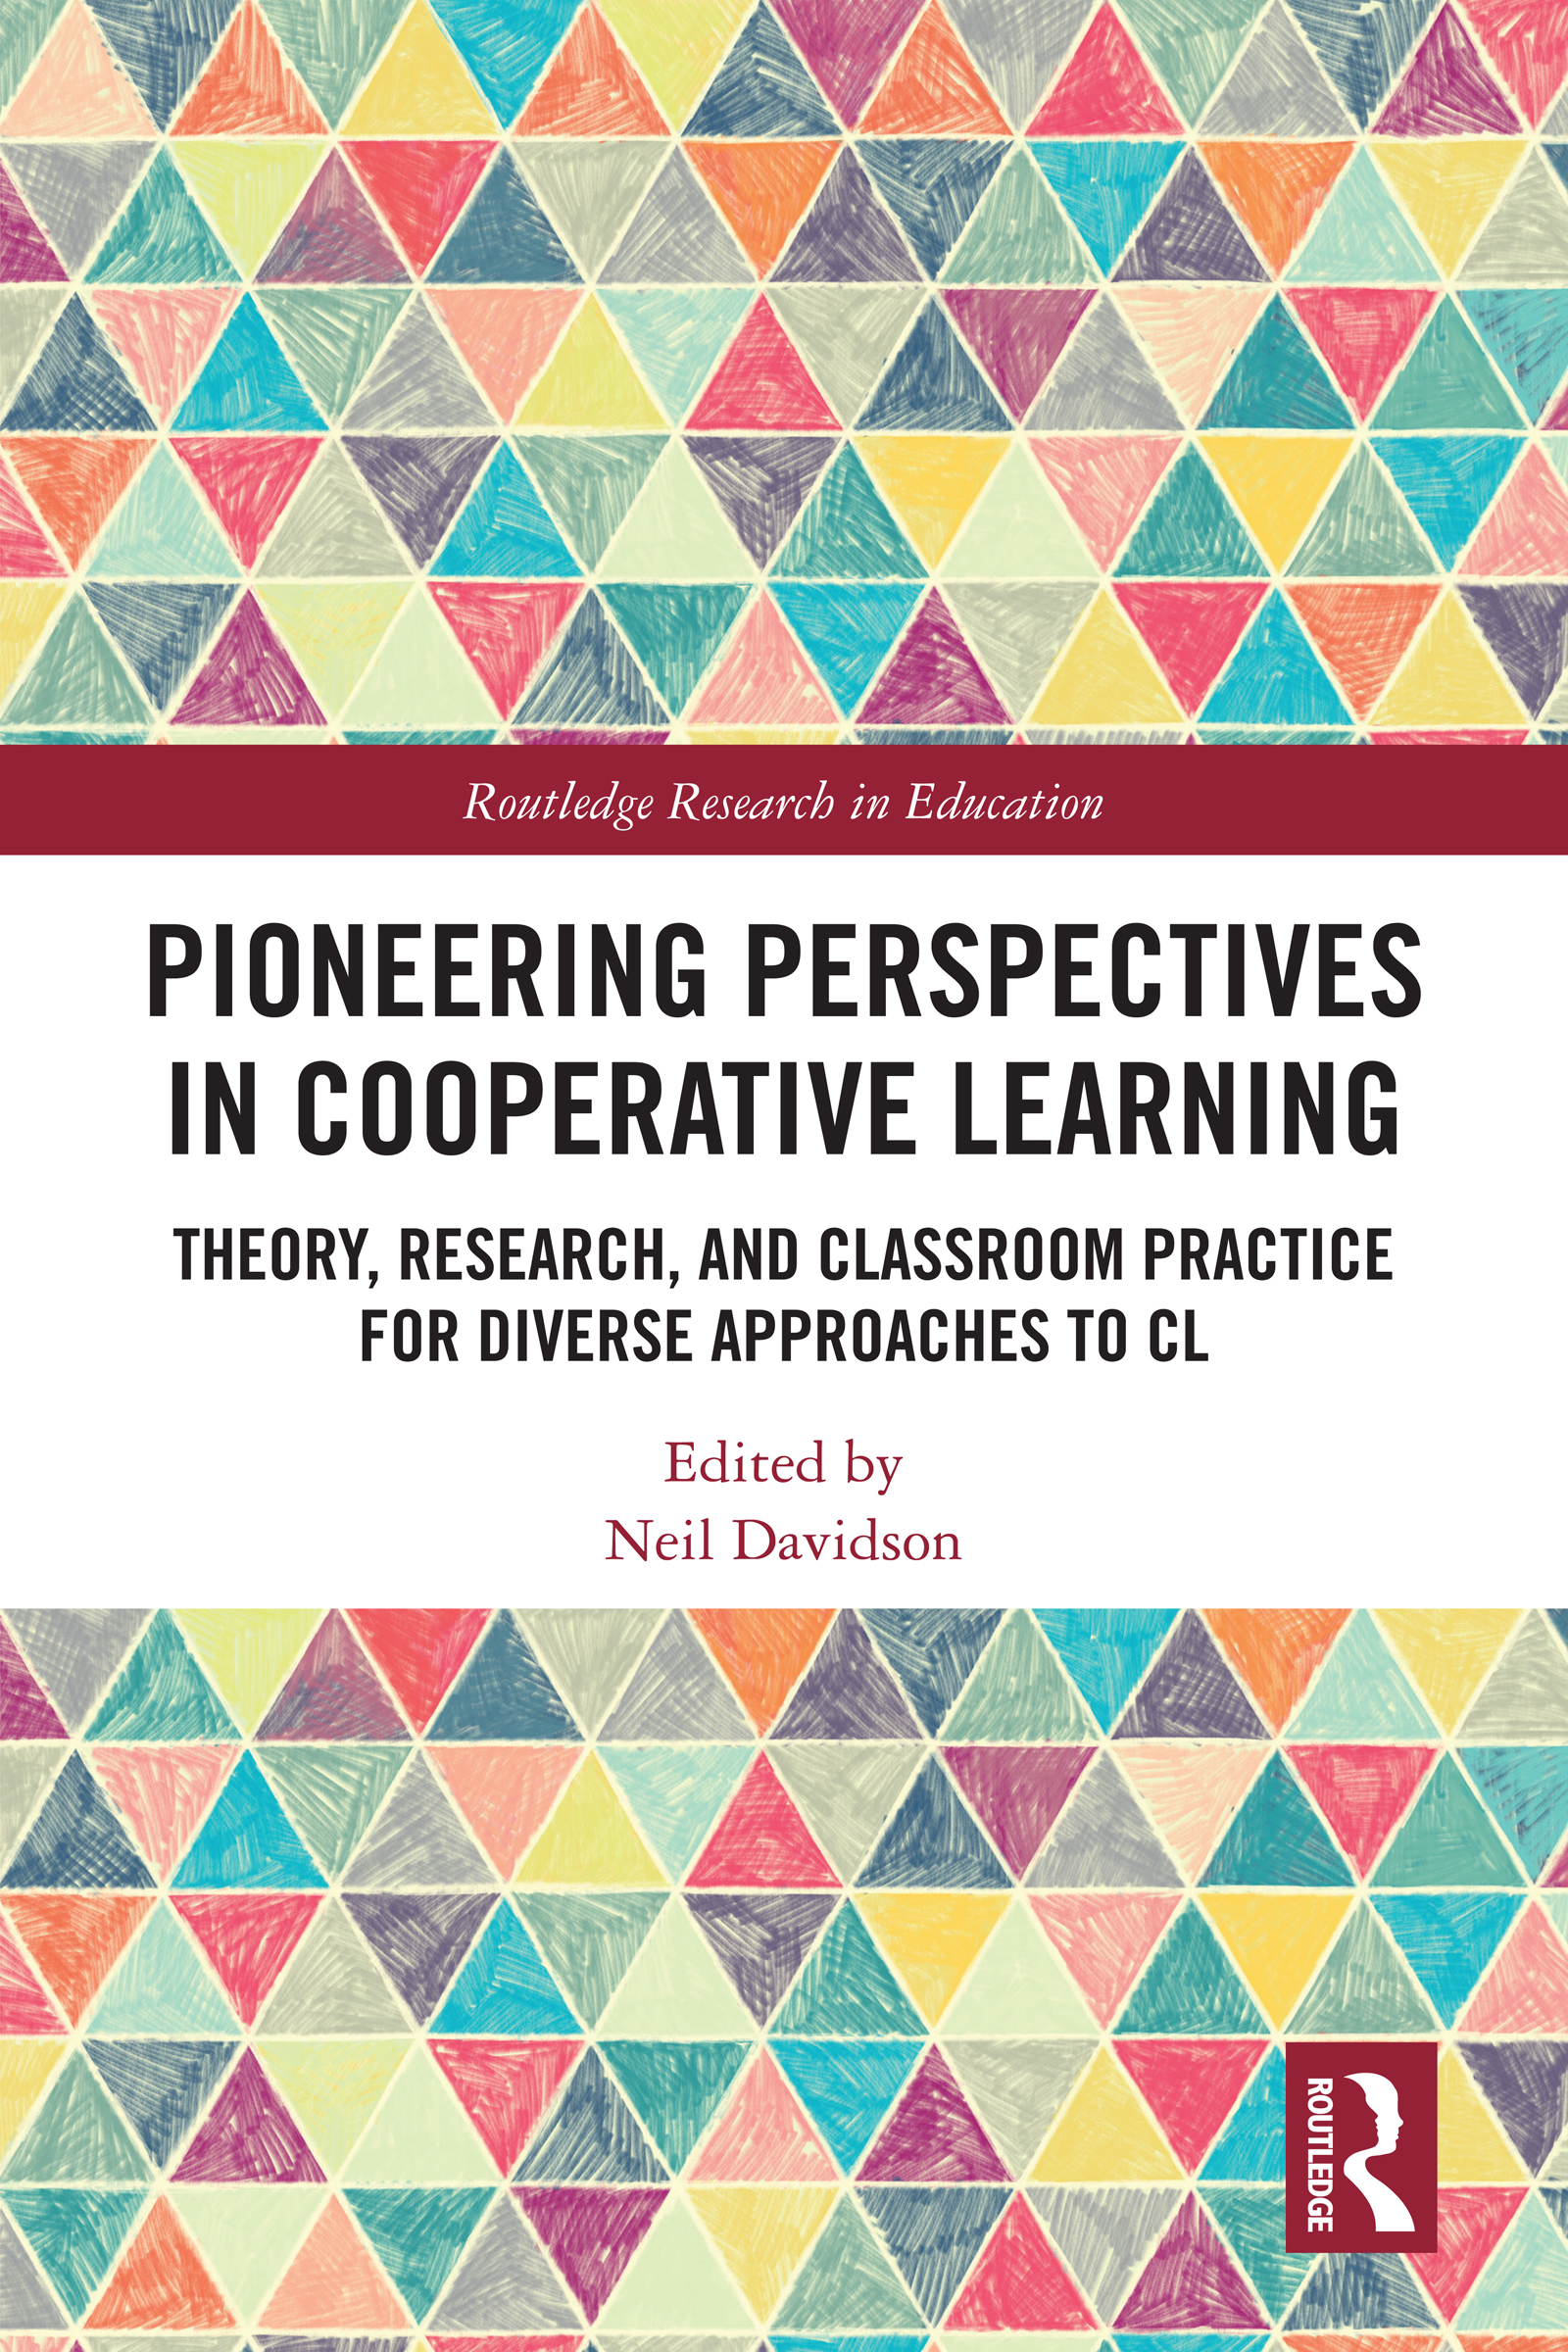 Introduction to Pioneering Perspectives in Cooperative Learning